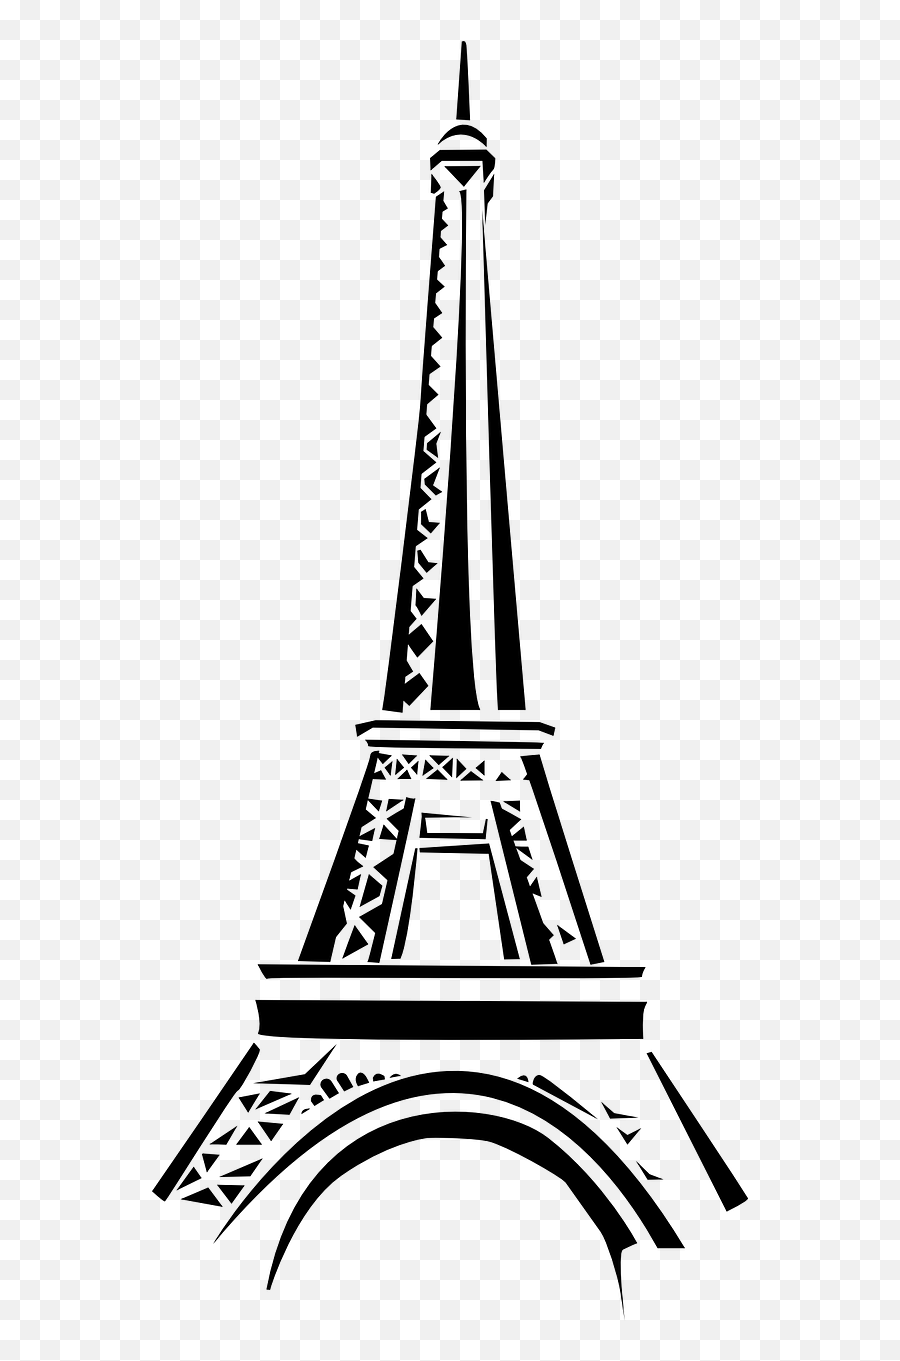 France Clipart Attraction France France Attraction France - Eiffel Tower Black And White Drawing Emoji,Eiffel Tower Emoji